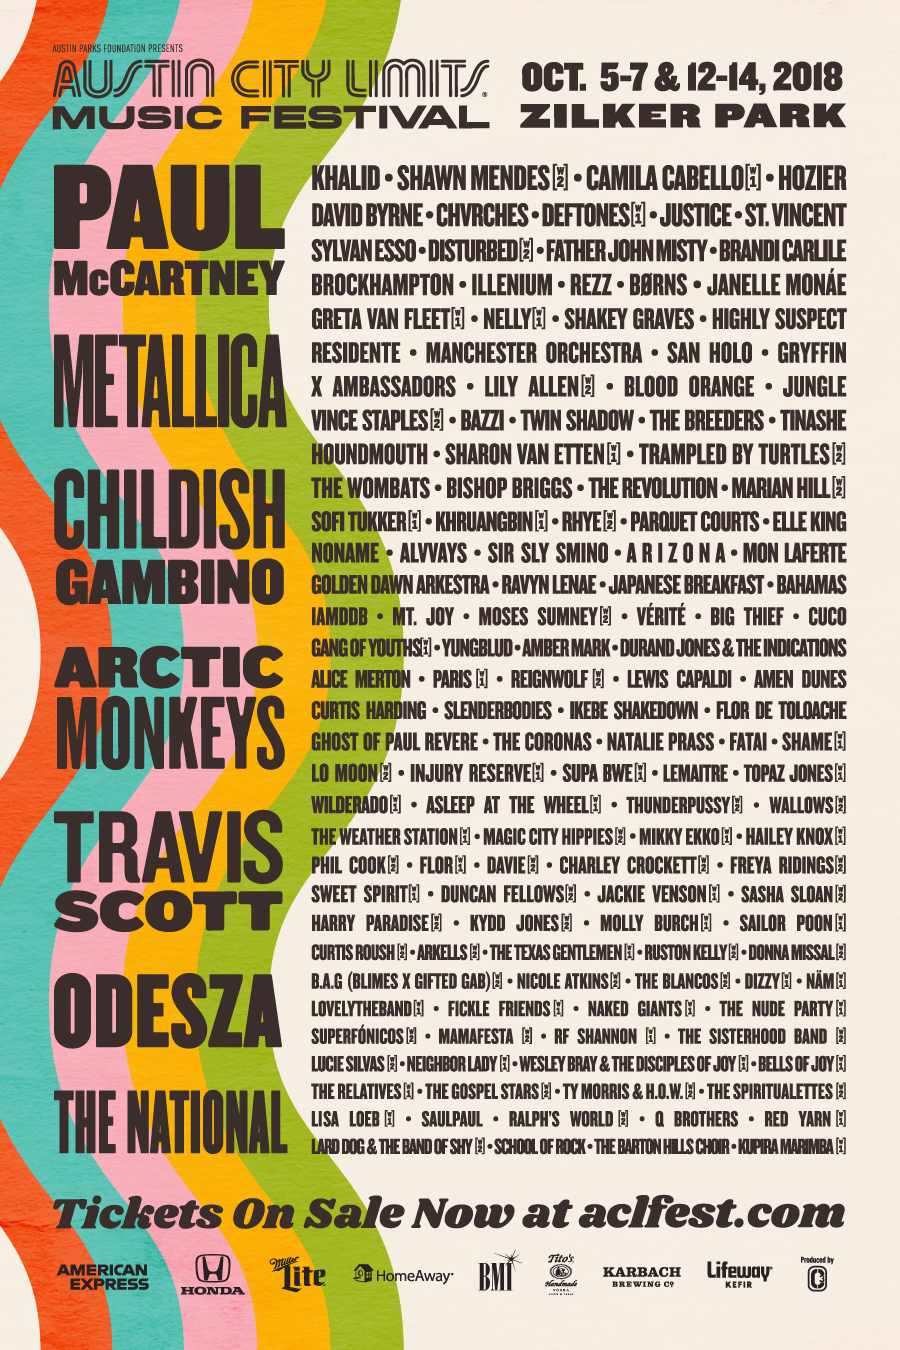 acl18-900px-website-lineup-98e02f9b.jpg